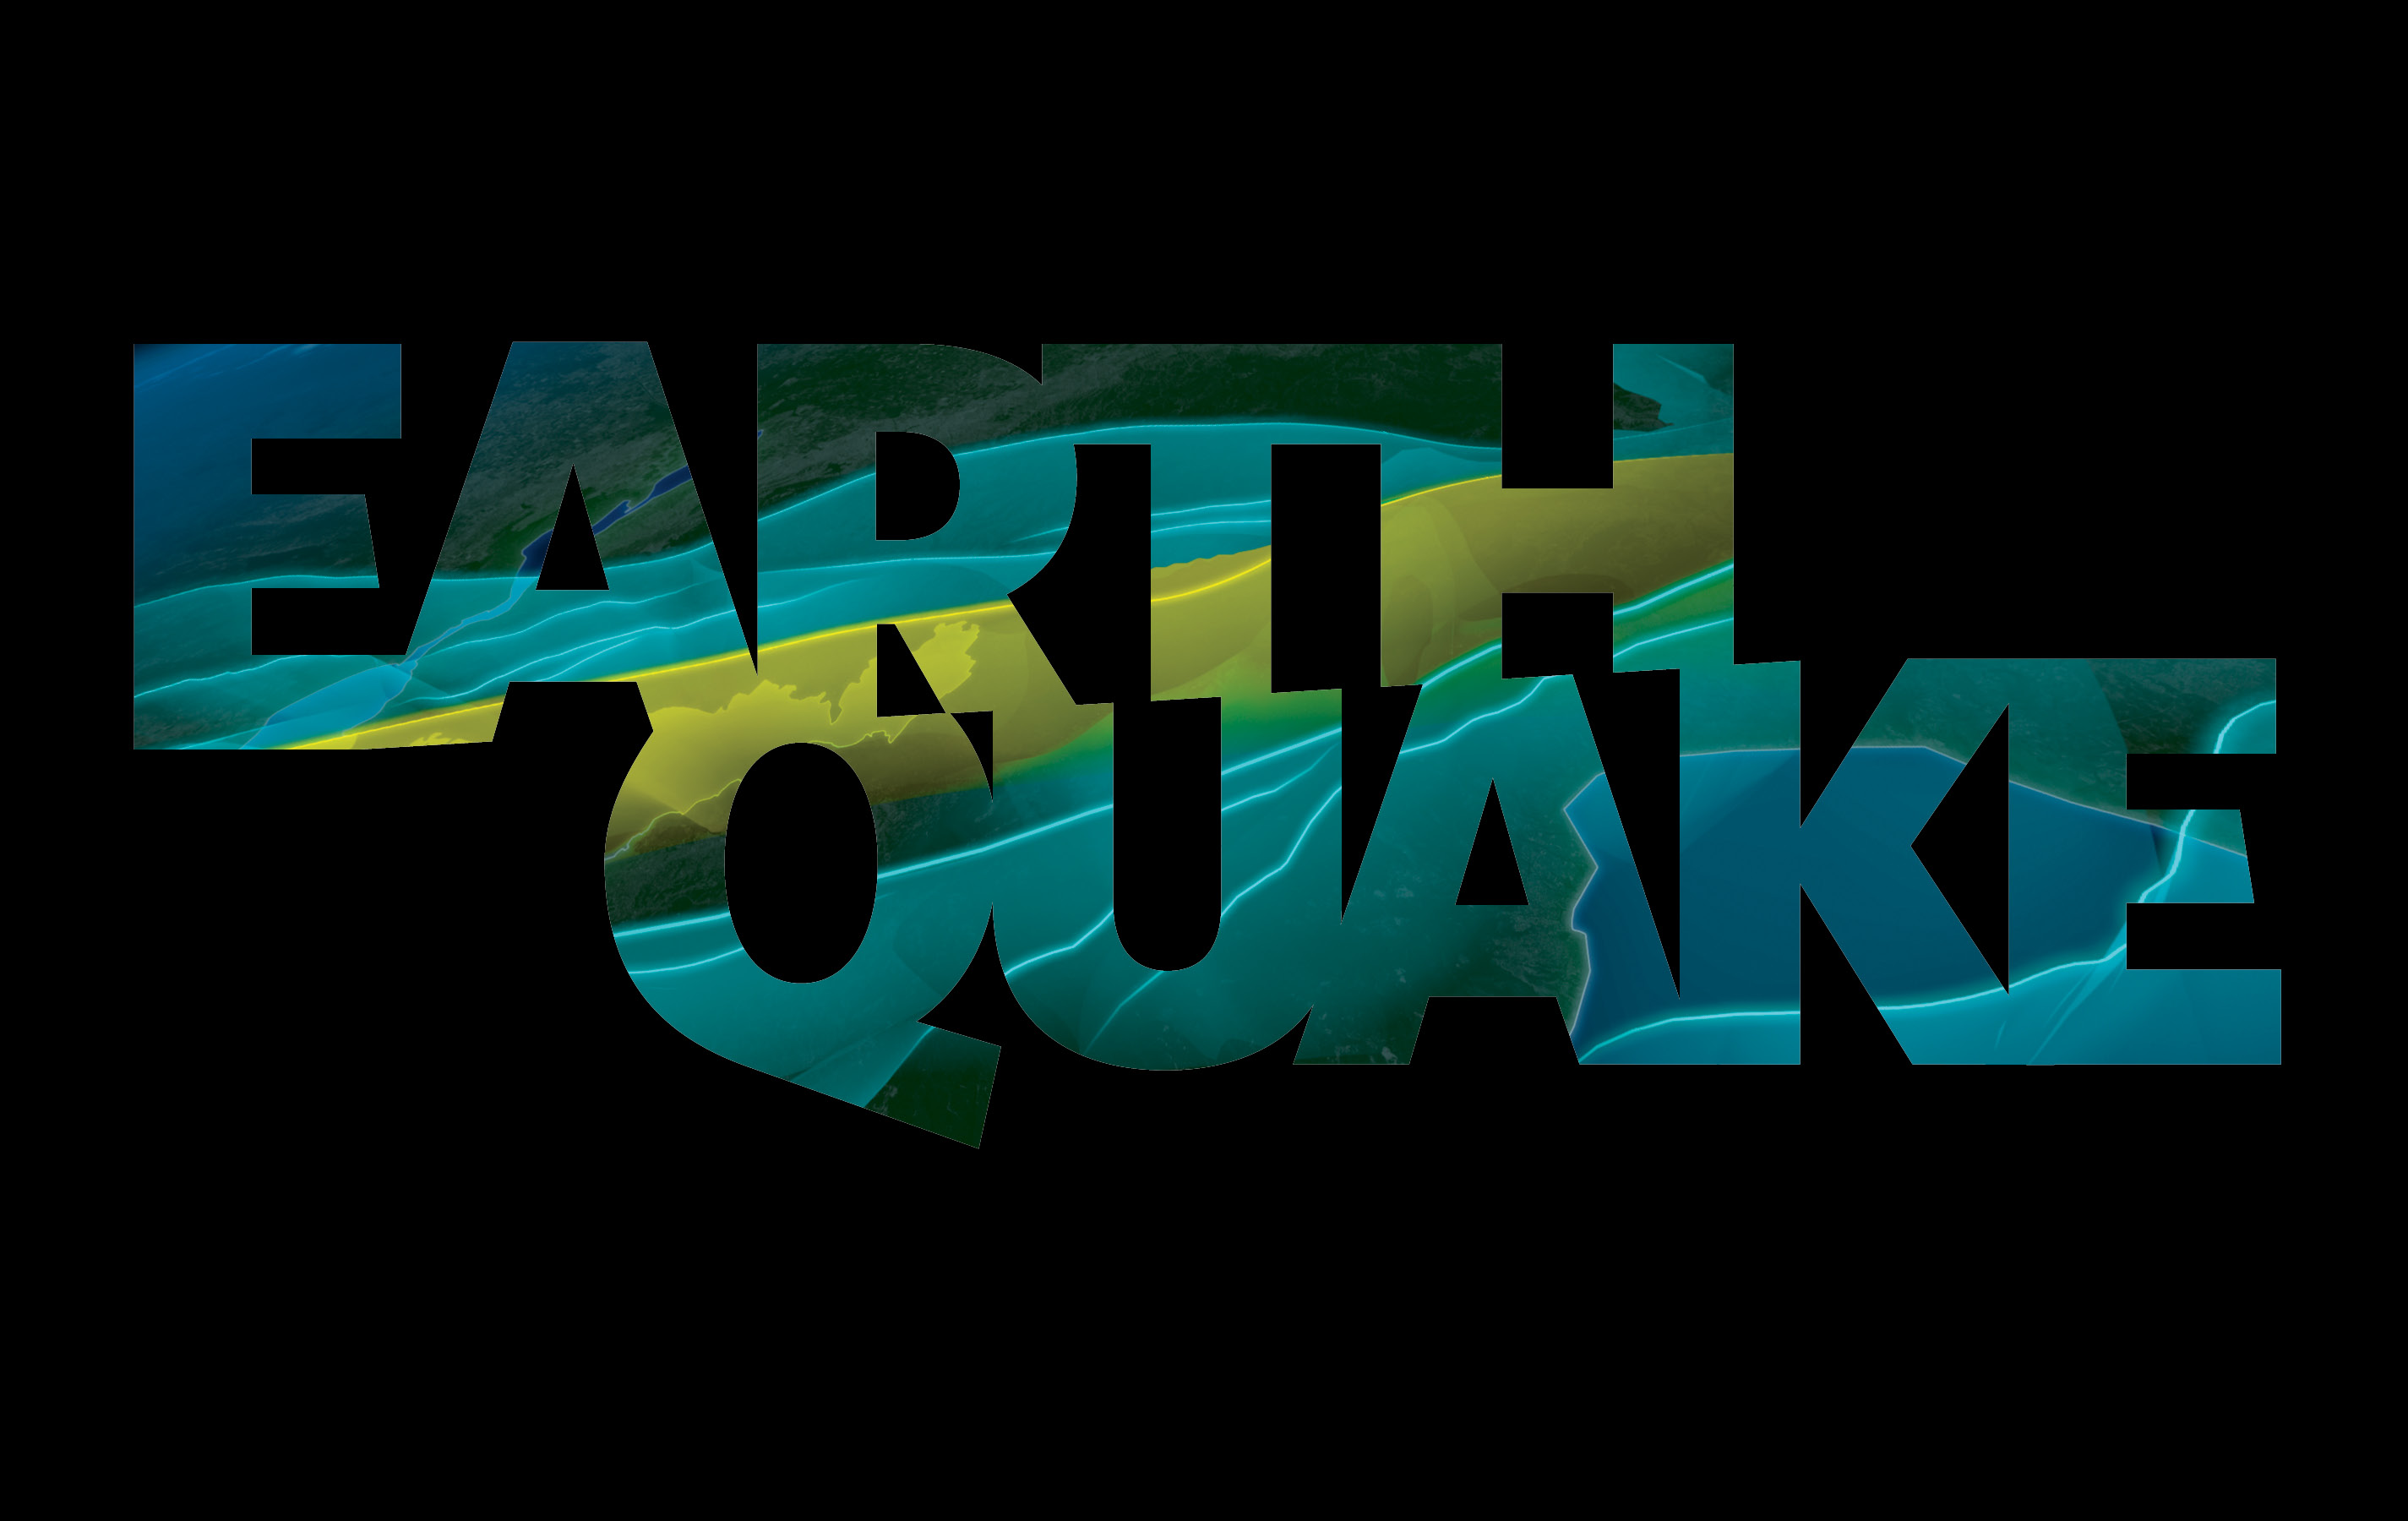 Earthquake Planetarium Show Opens On May 26 2012 At The